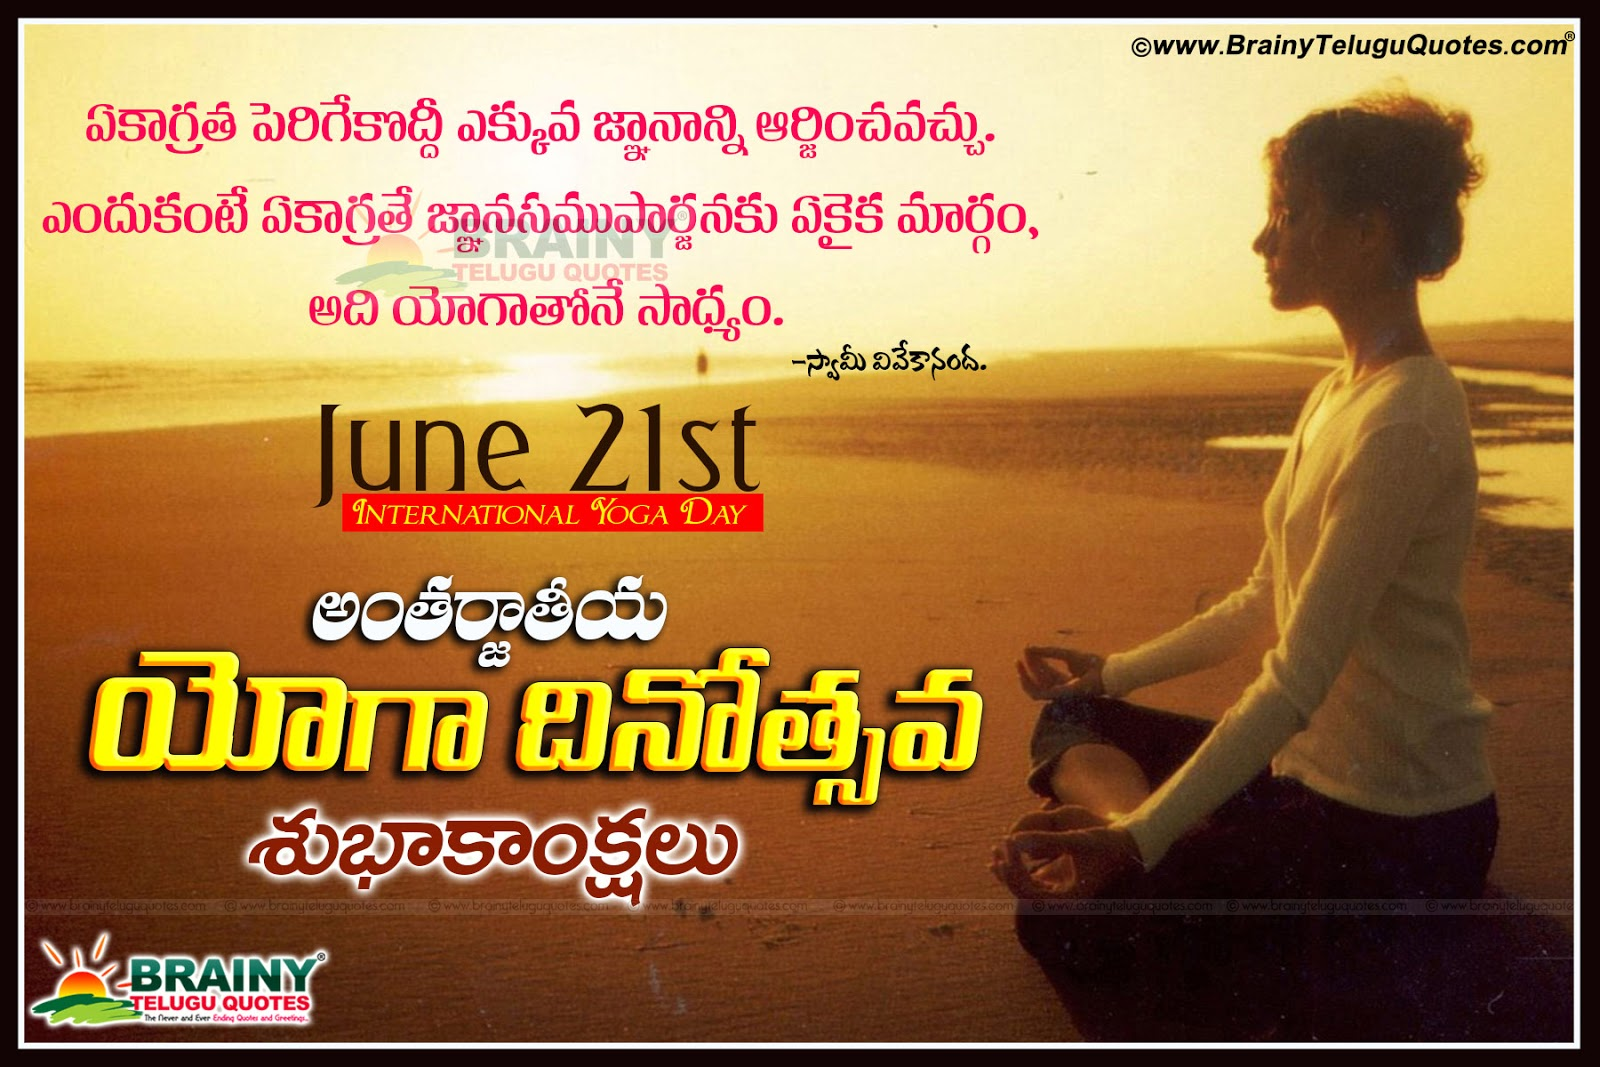 2016 International Yoga Day June 21st Wishes Quotes In Telugu Hd